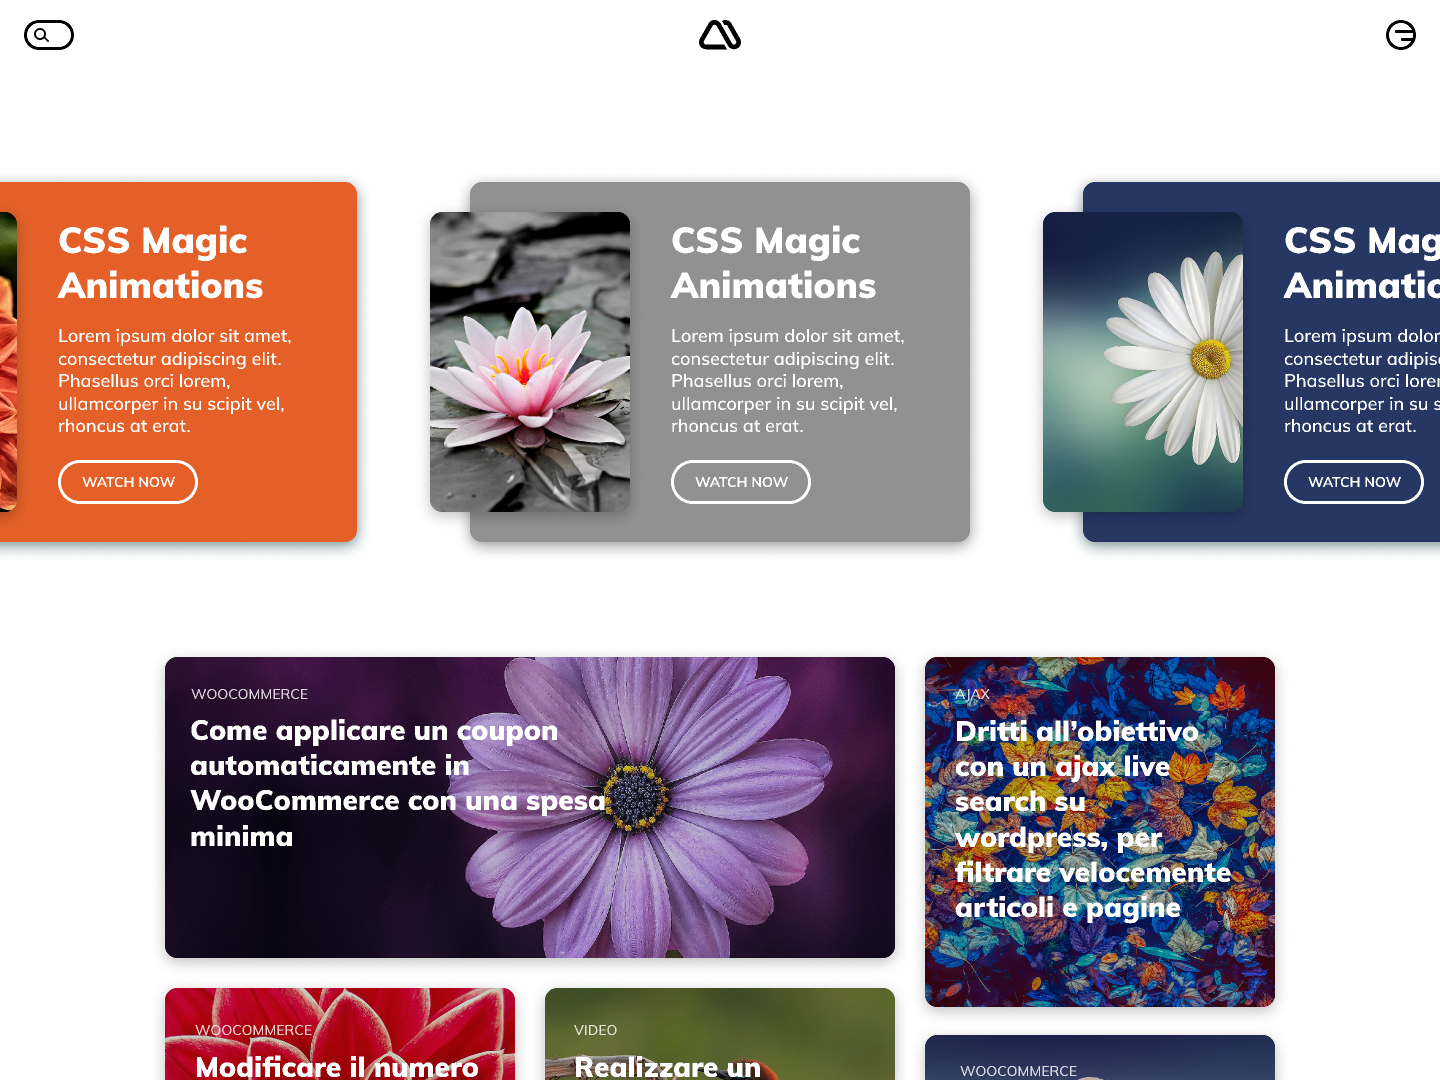 My Blog redesign by christian pucci   Dribbble   Dribbble